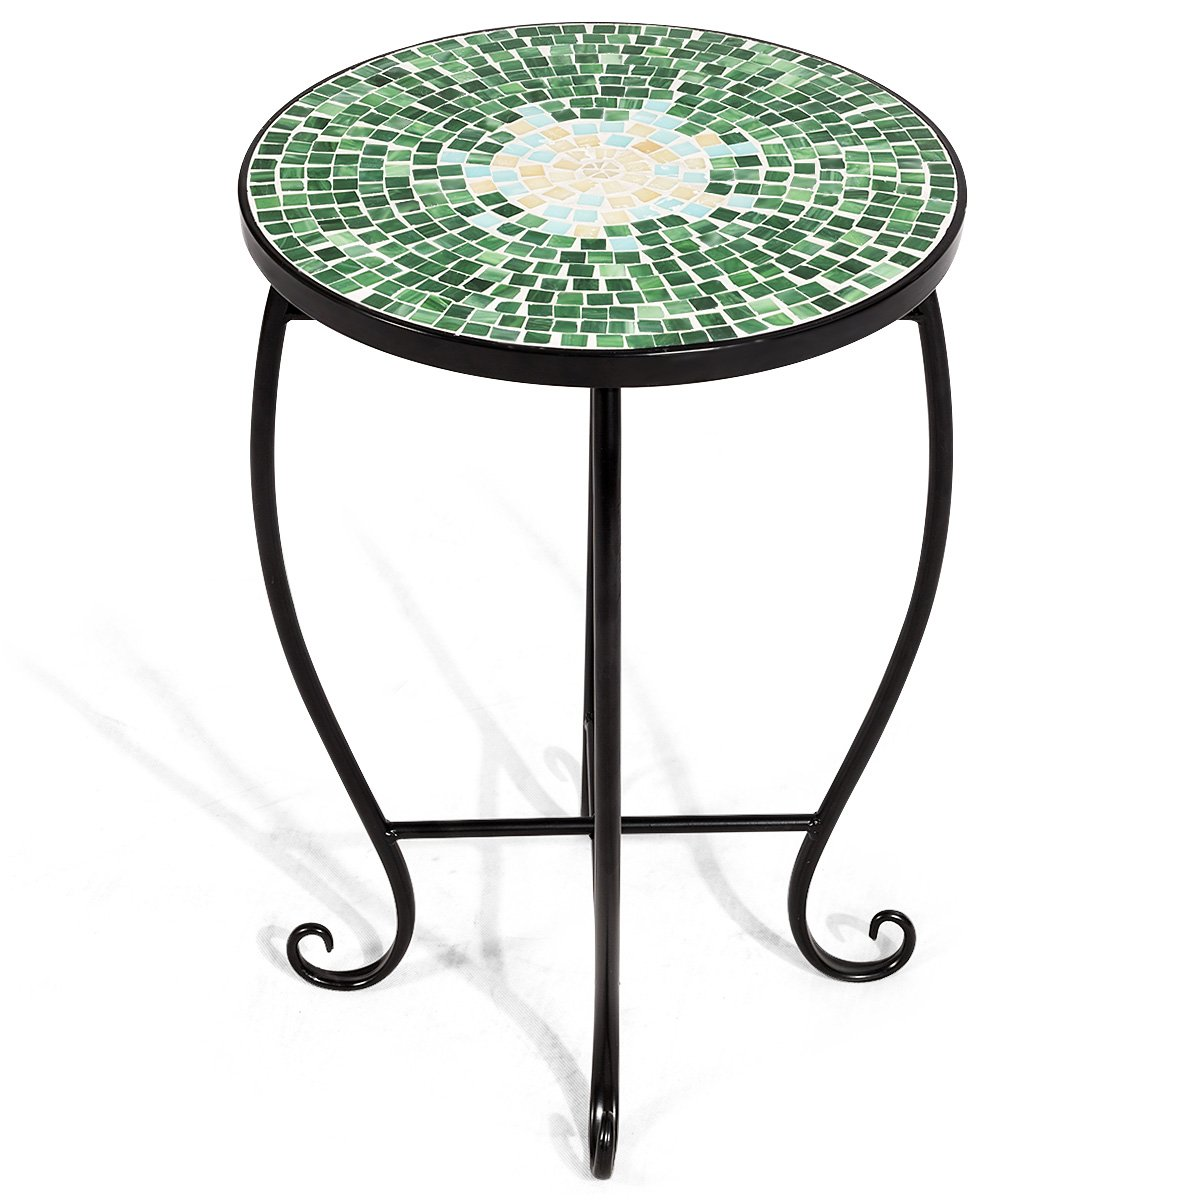 giantex mosaic round side accent table patio plant outdoor stone stand porch beach theme balcony back deck pool decor metal cobalt glass top indoor black lamp tables for living